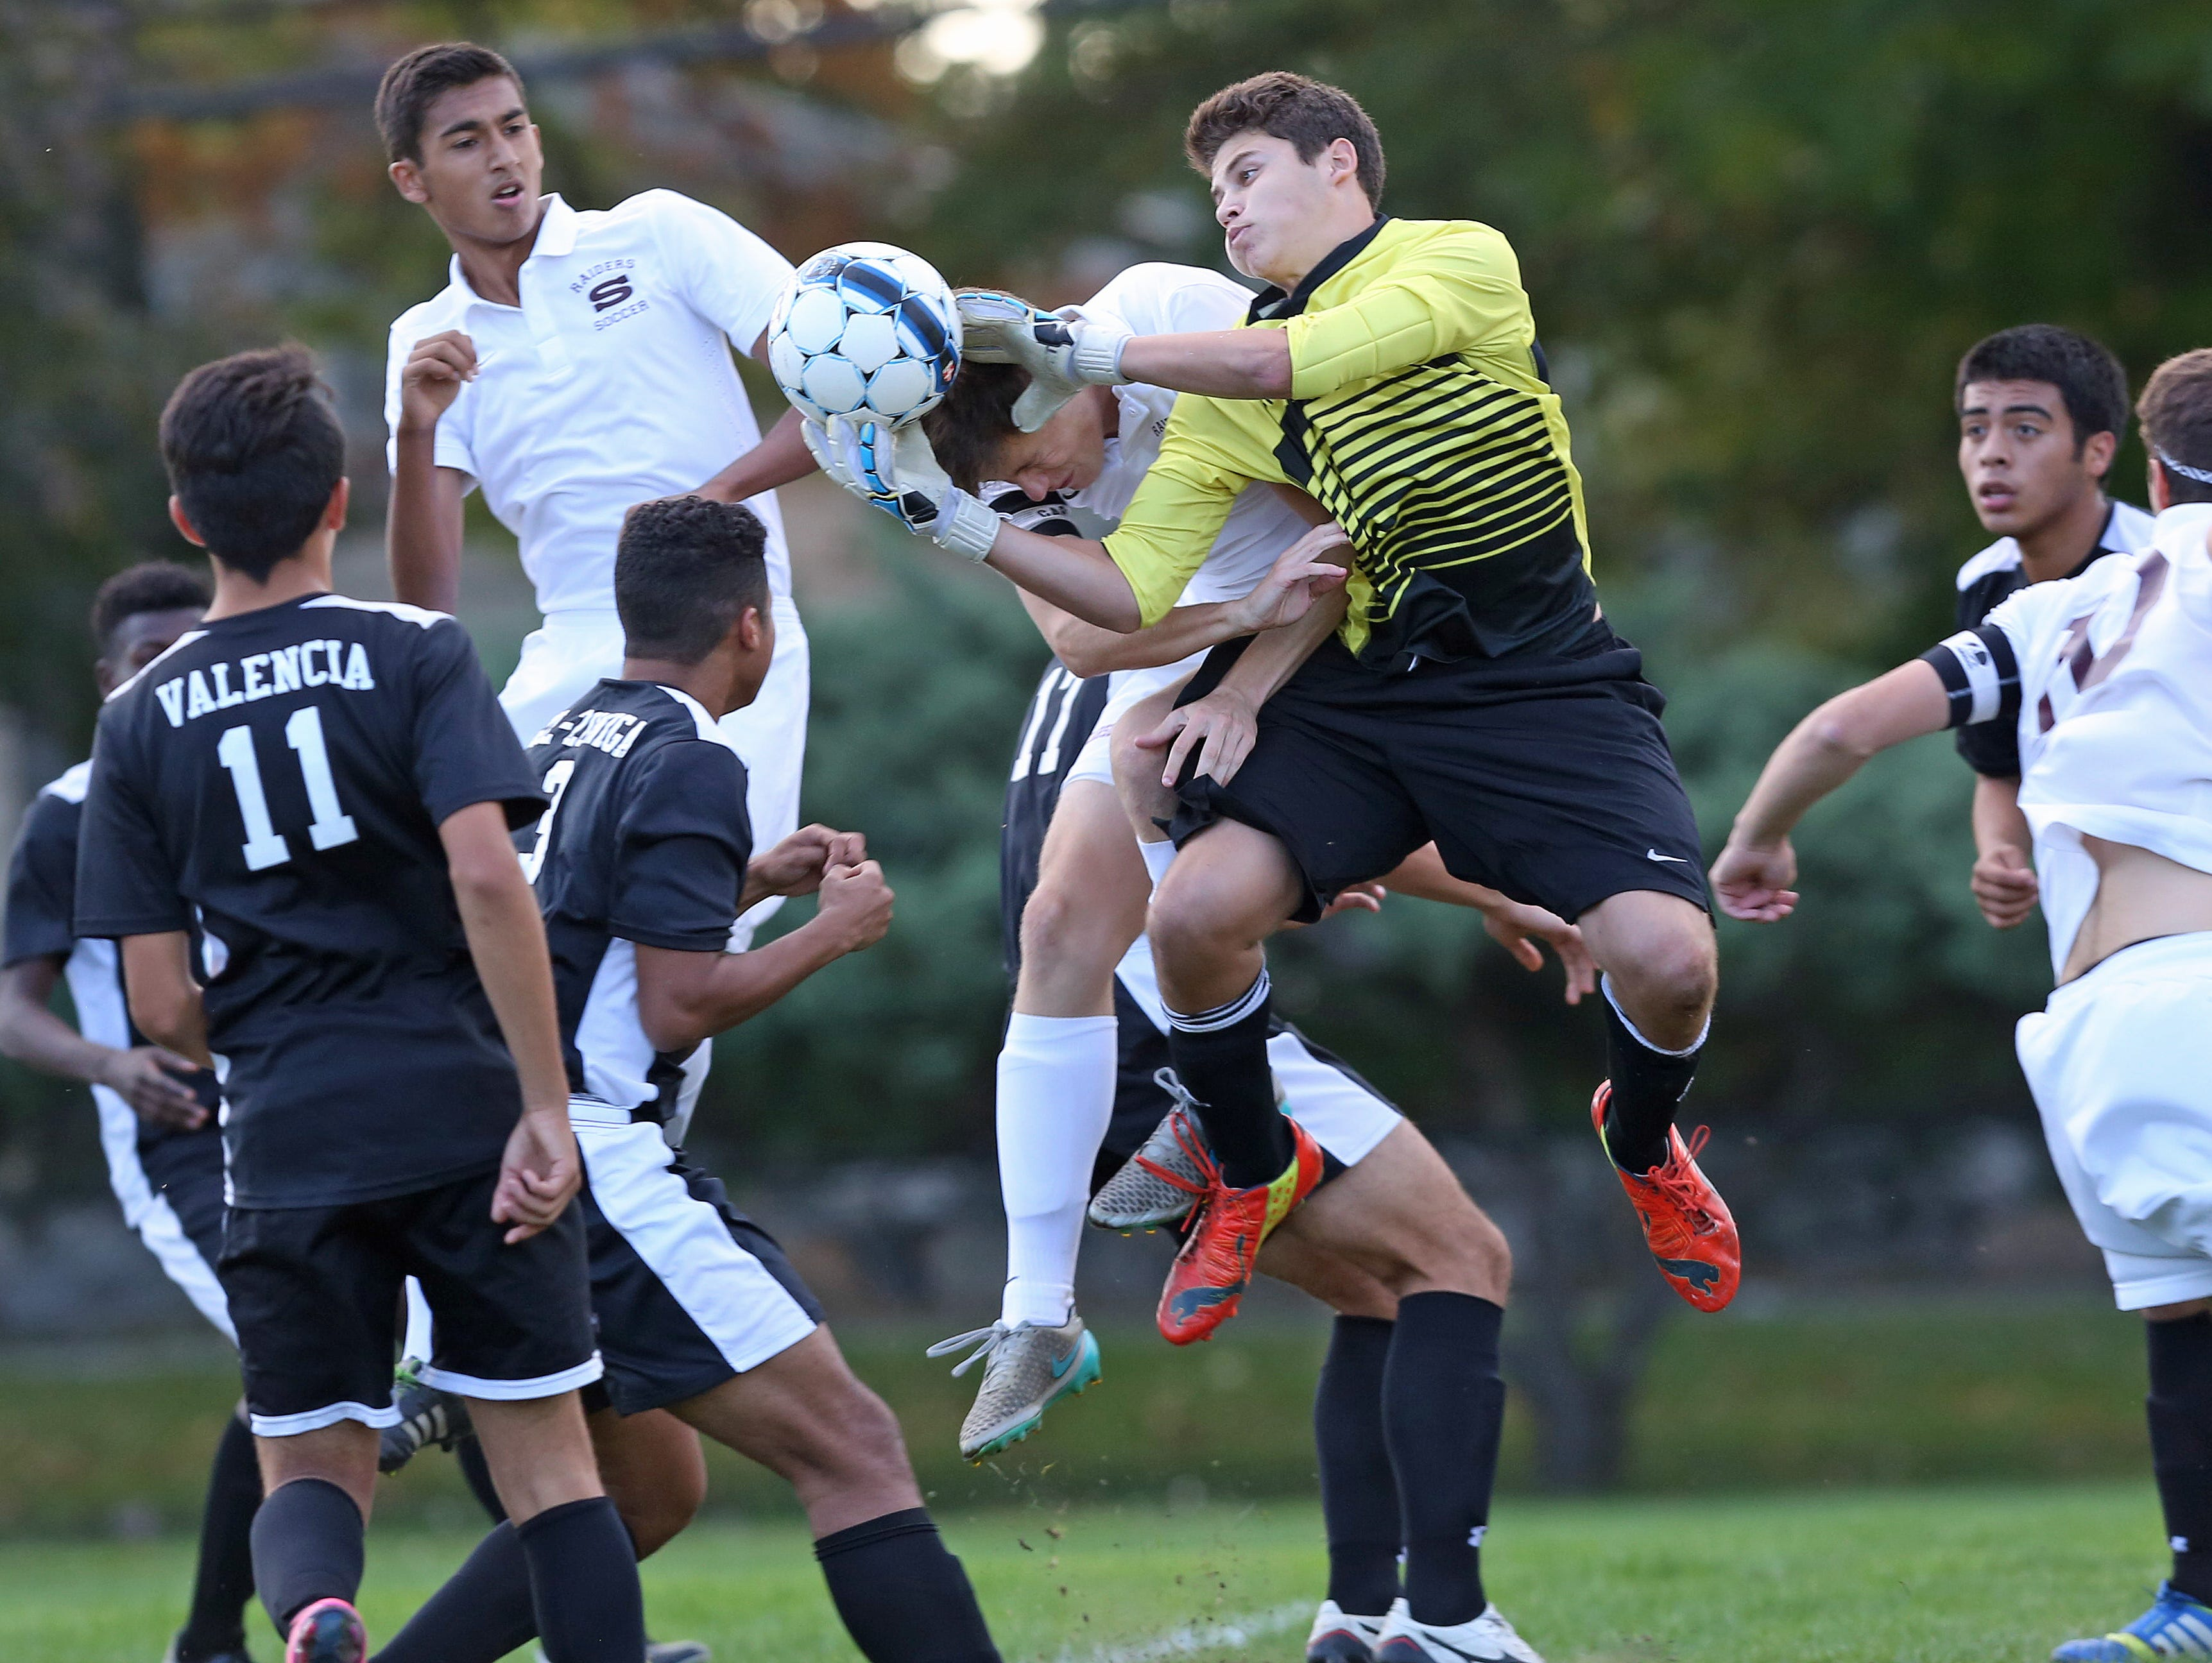 New Rochelle goalkeeper Ryan Goldstein makes a first half save despite pressure from Scarsdale's Max Bryant (4) during a boys soccer game at Quaker Ridge School in Scrasdale Oct. 13, 2015. Scarsdale won the game 5-2.